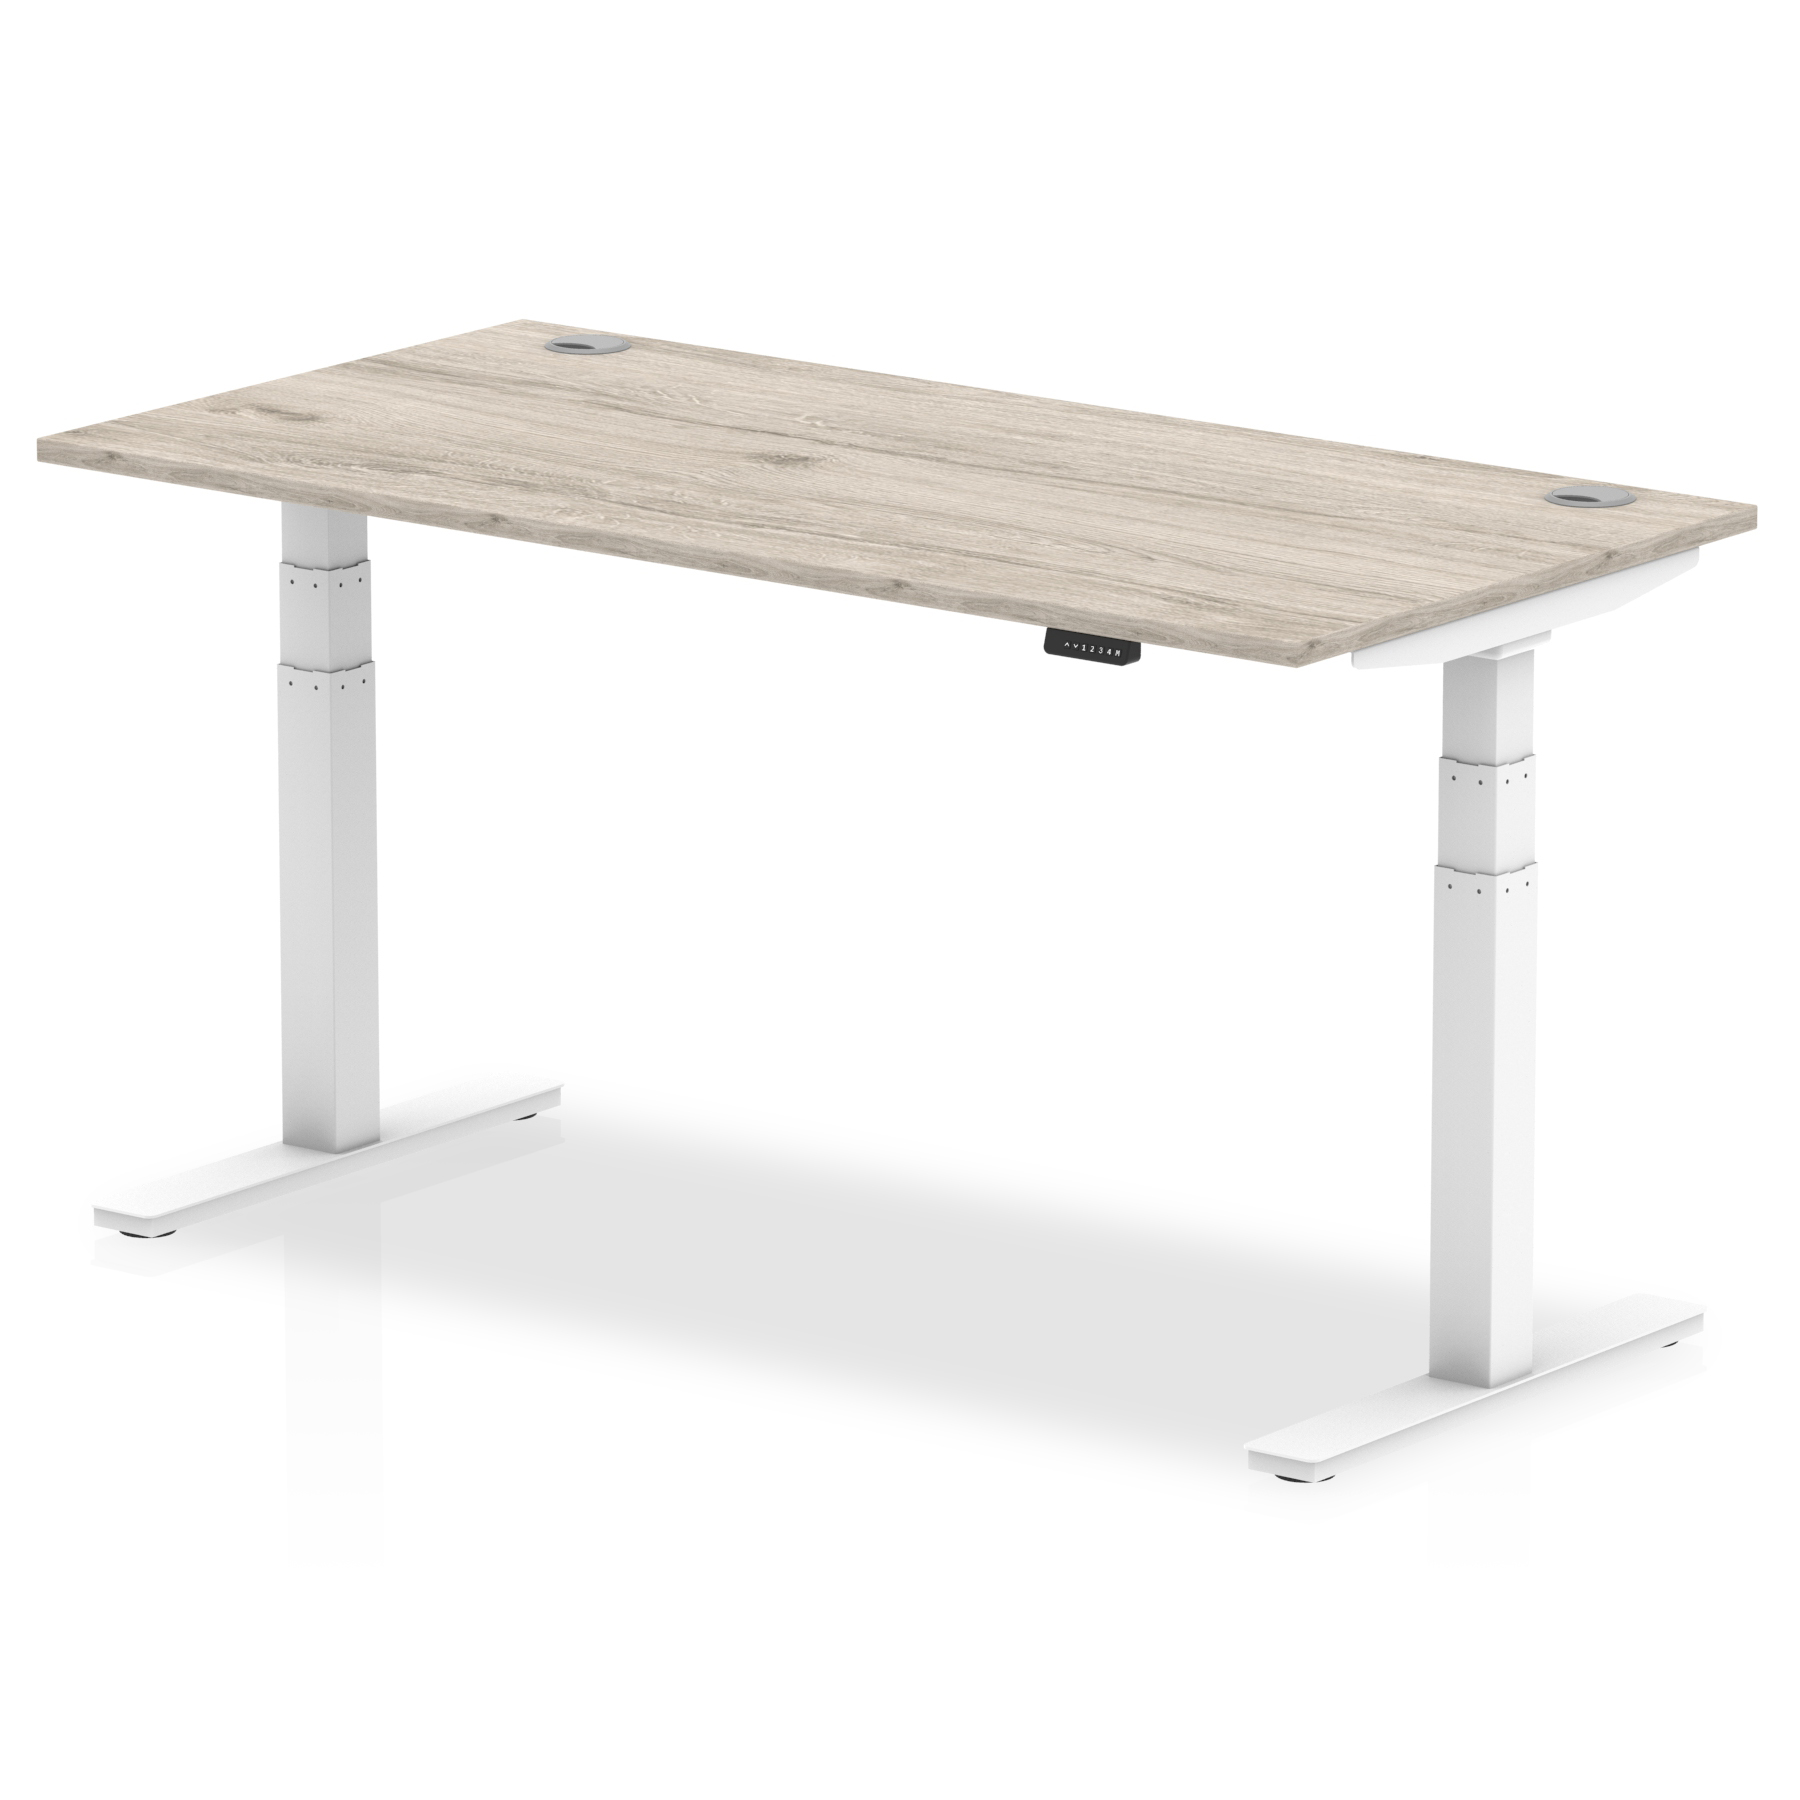 Trexus Sit Stand Desk With Cable Ports White Legs 1600x800mm Grey Oak Ref HA01174